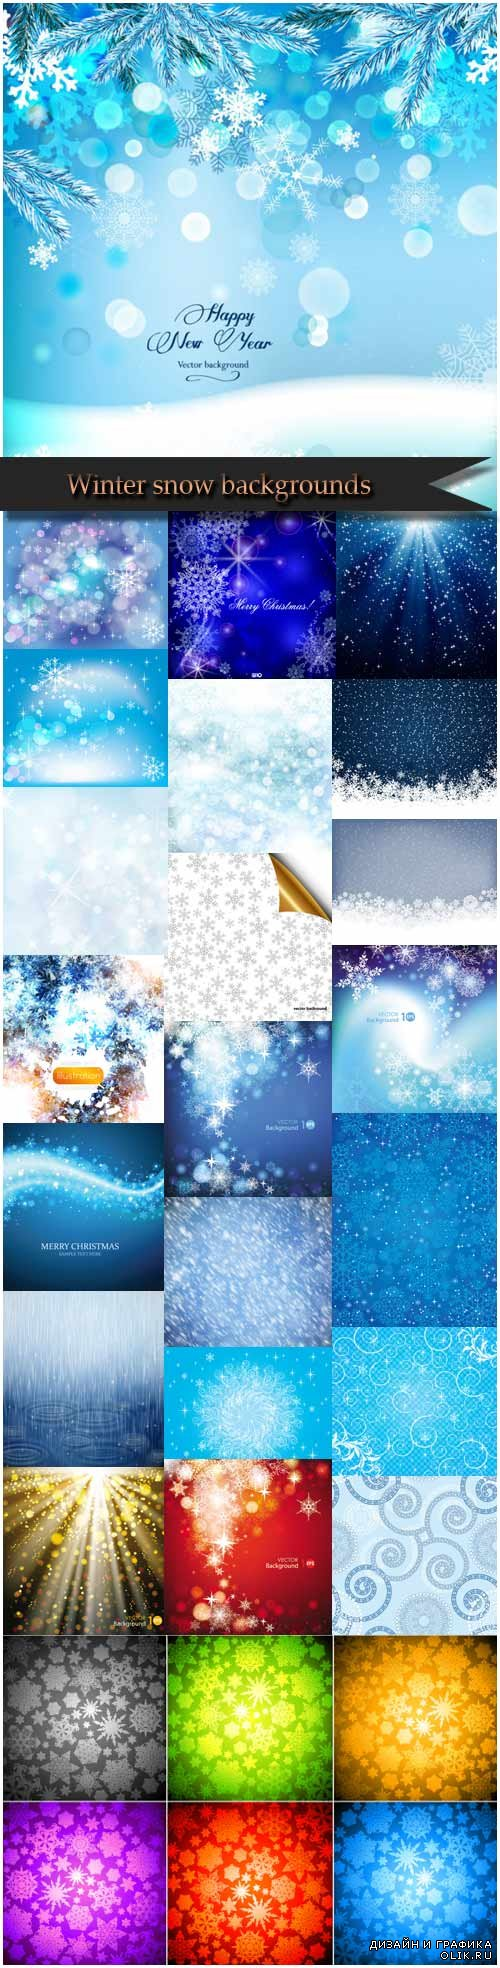 Winter snow backgrounds